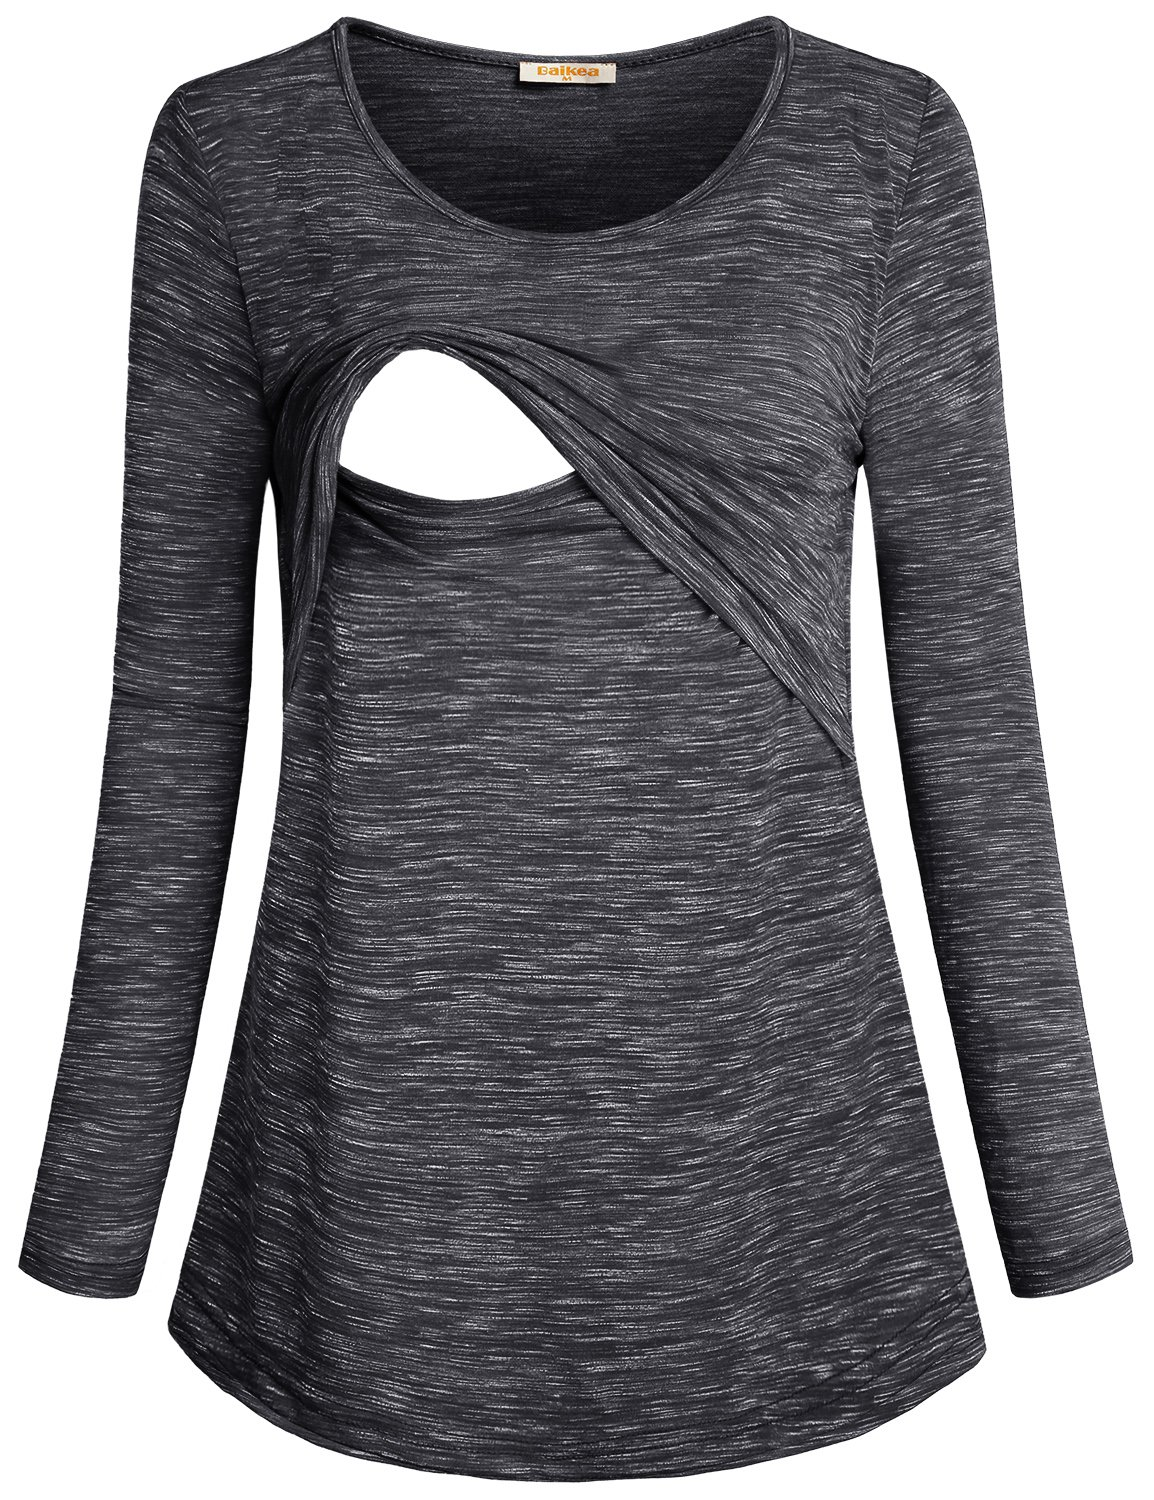 Baikea Women's Loose Comfy Layered Nursing Top and Shirts for Breastfeeding Black XL